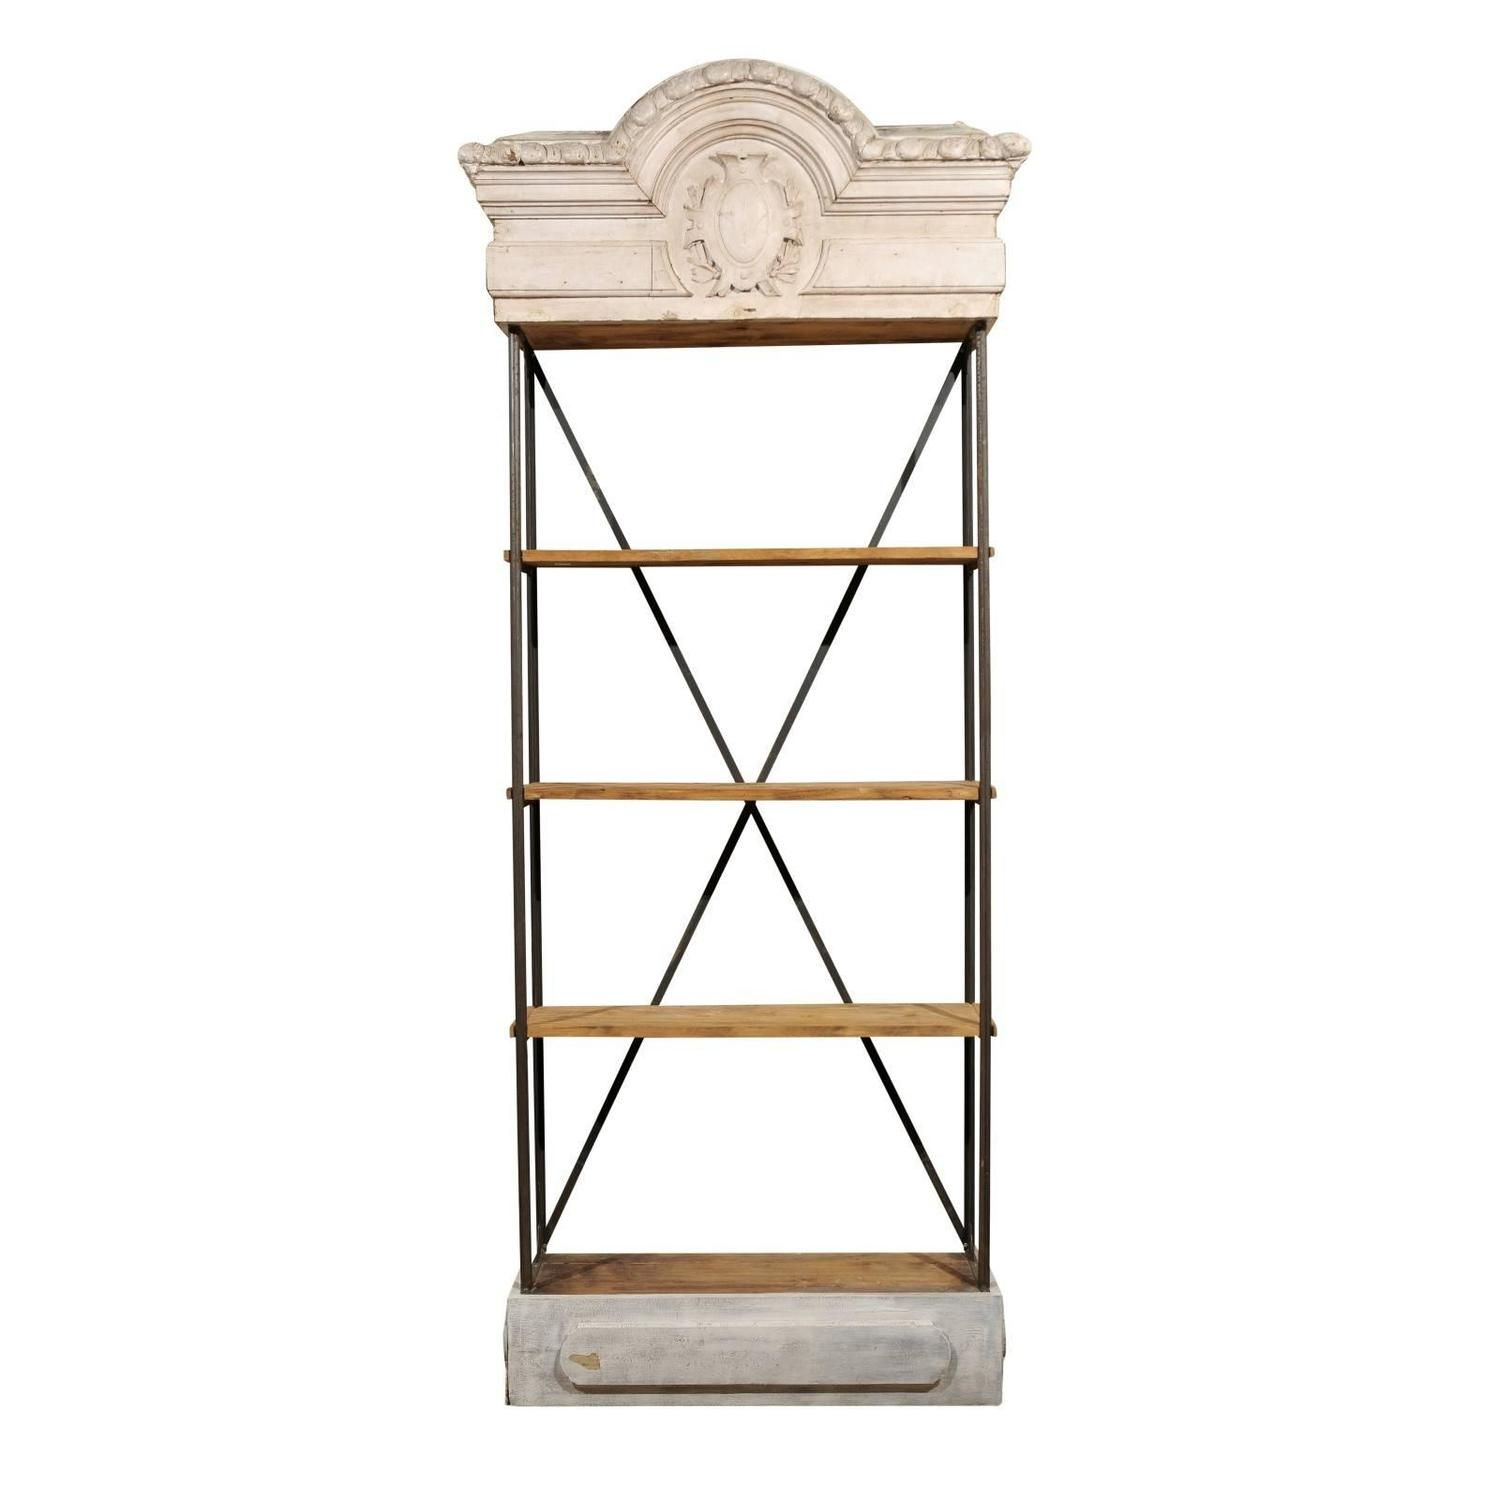 Tall Iron Bookcase Made Around Antique Painted Cornice